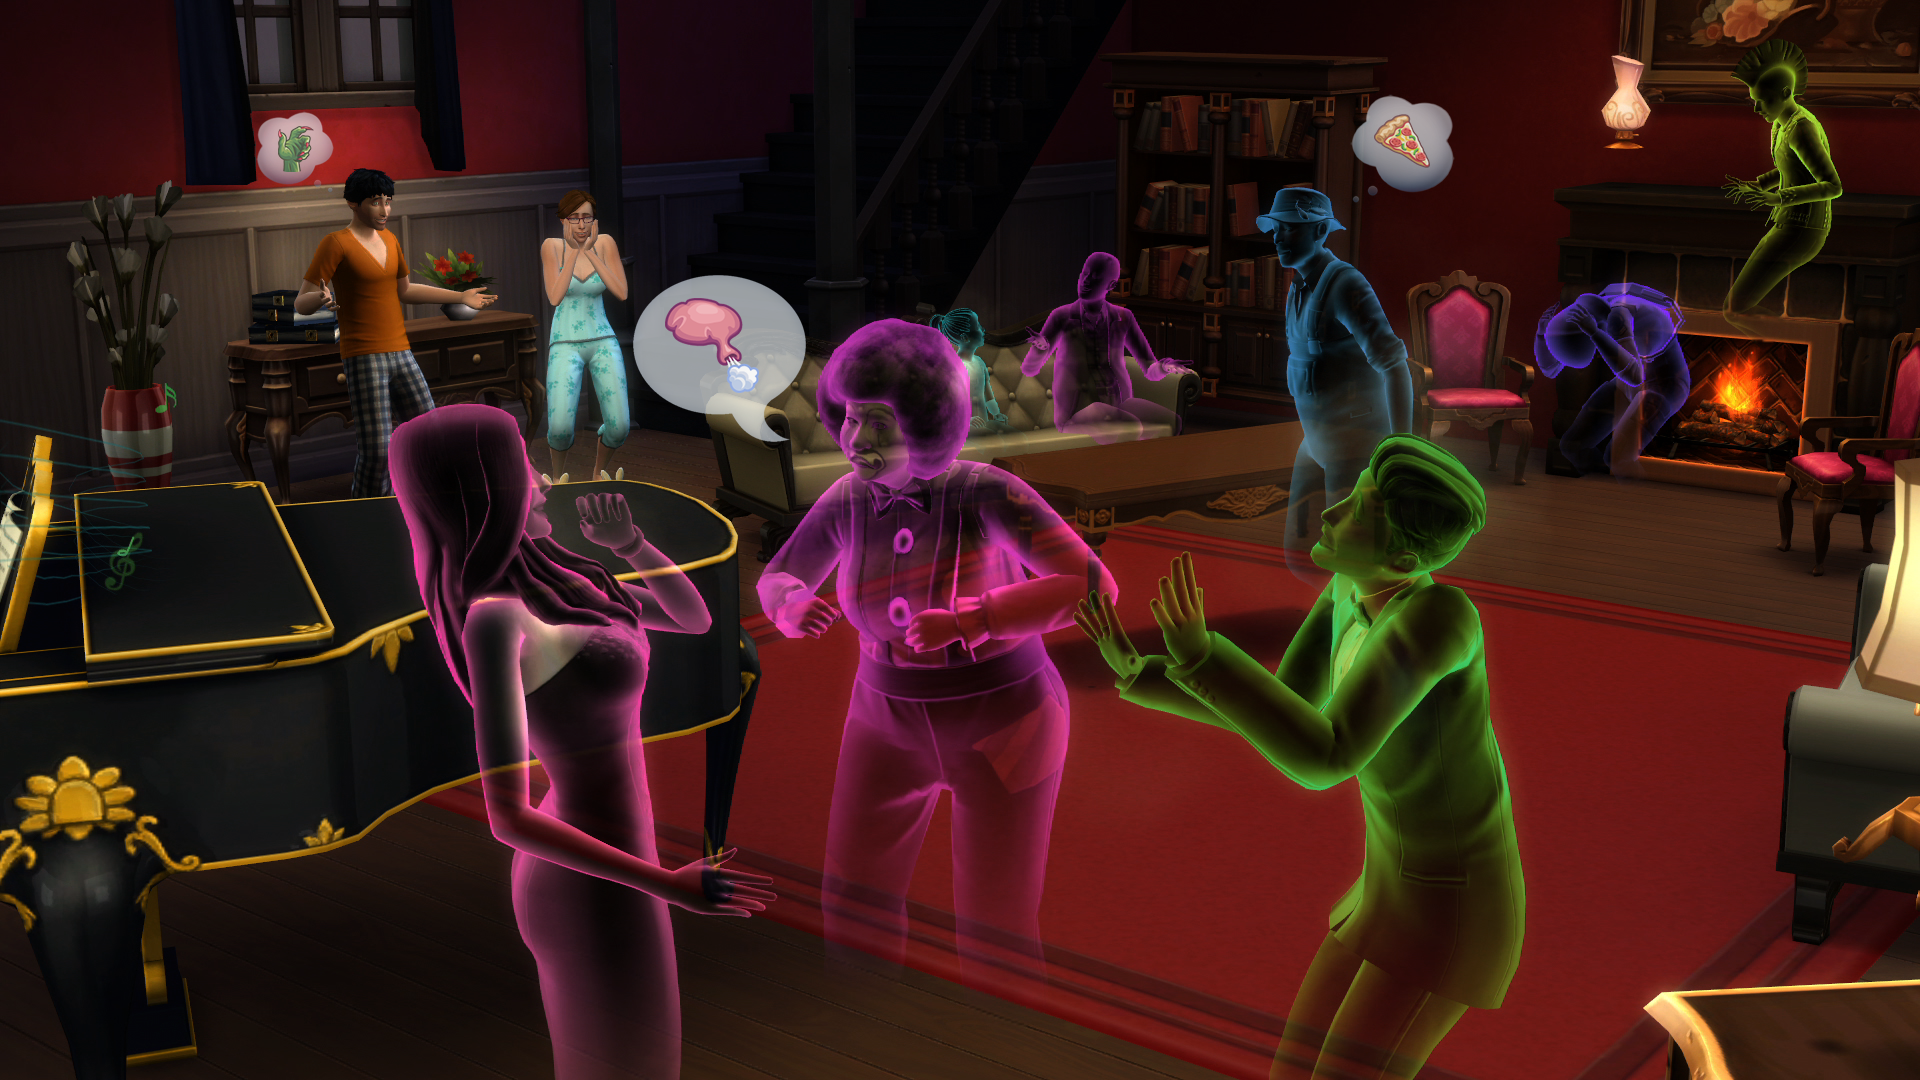 The Sims 4 Will Bring Back Ghosts And Swimming Pools (Free Of Charge)